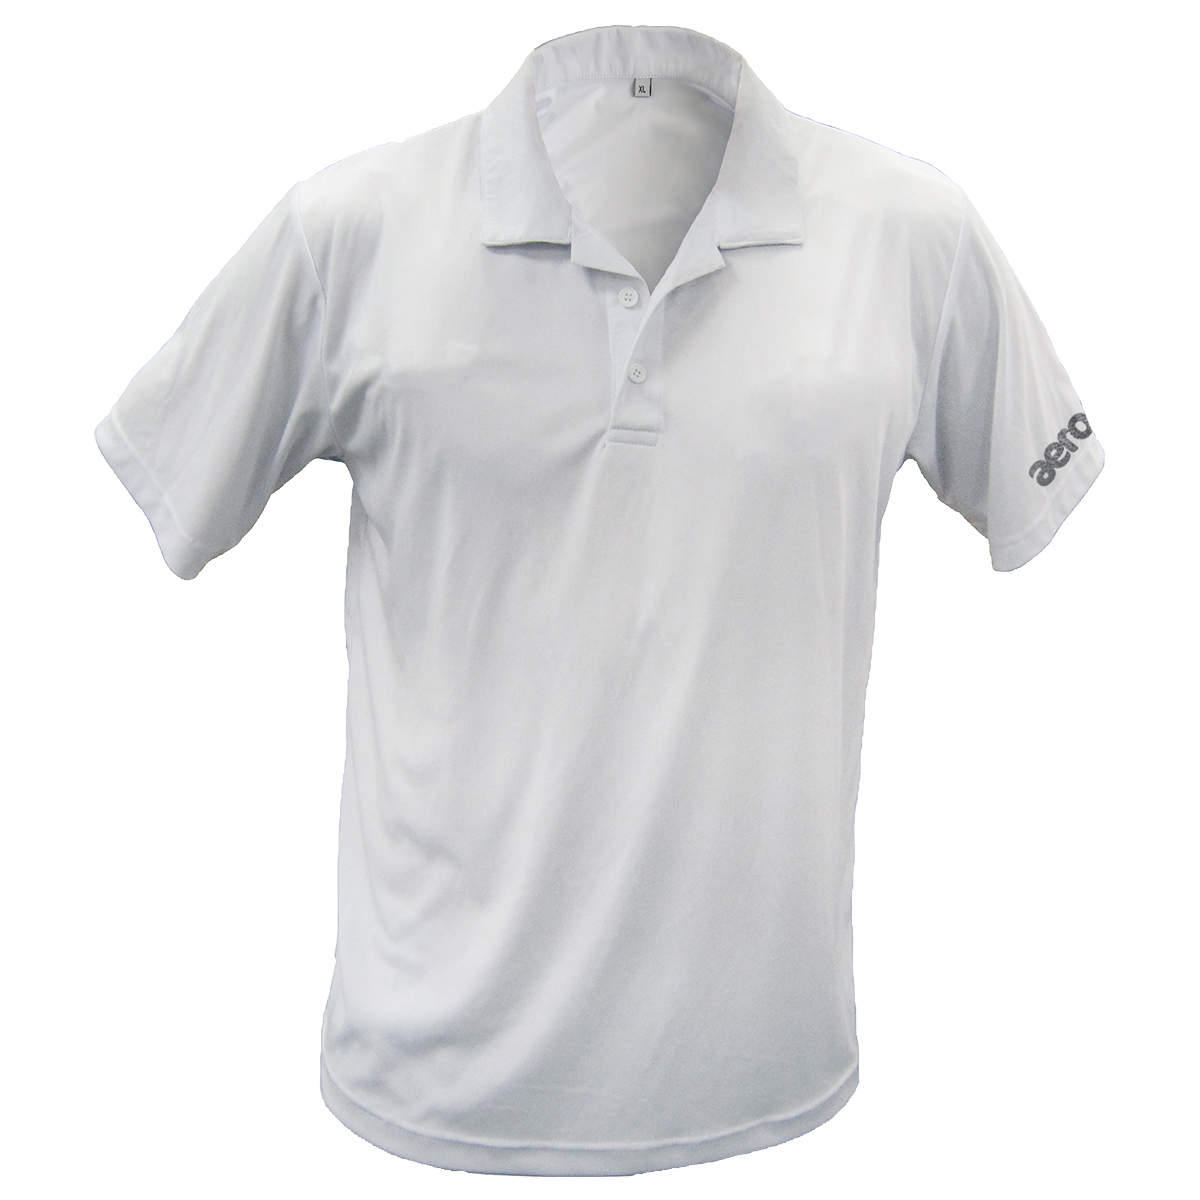 1610-Aero-Clothing-Cricket-Shirt-Web